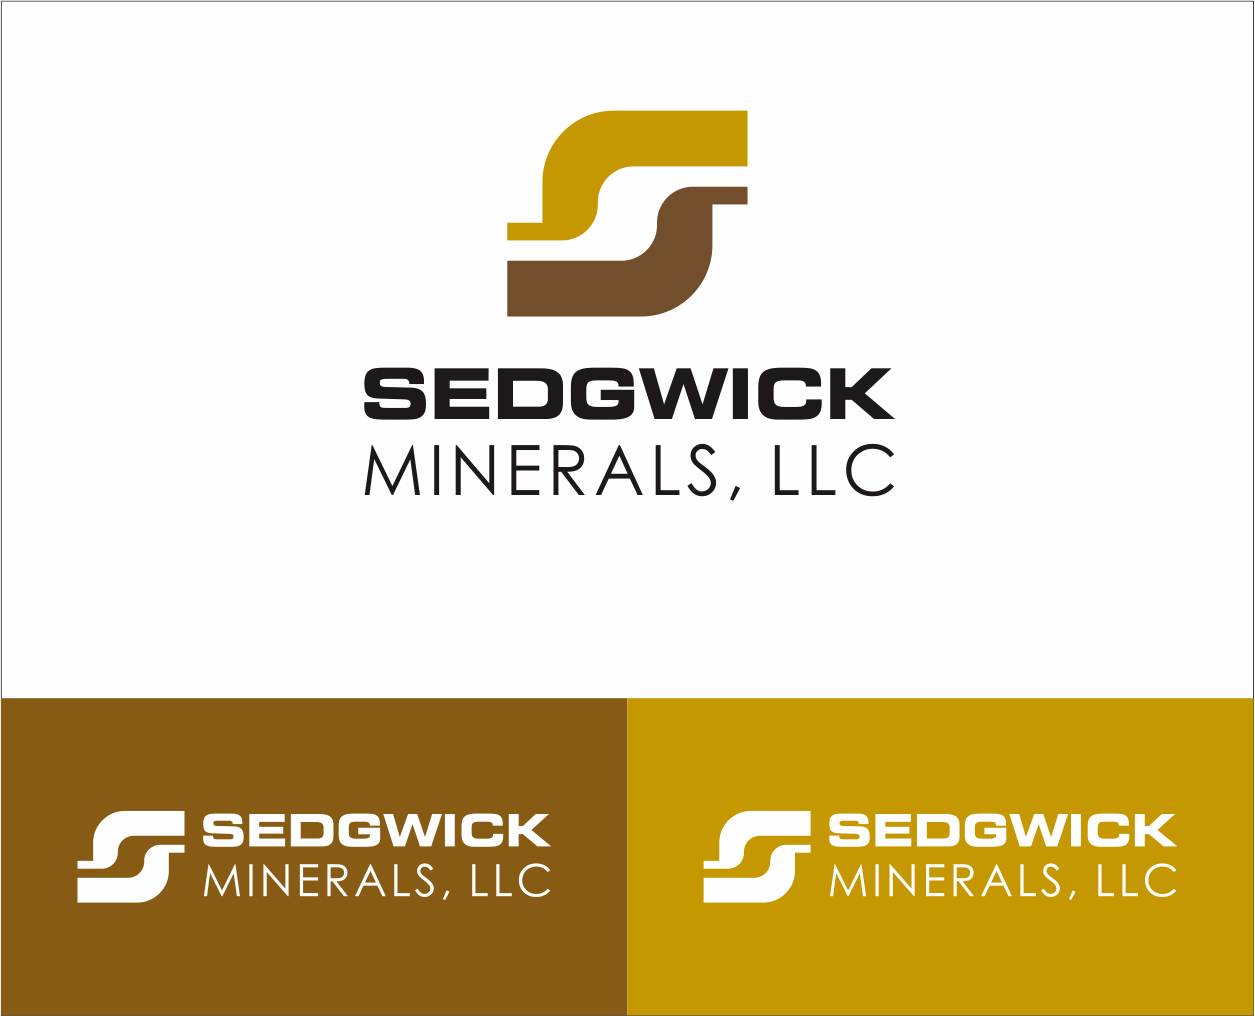 Logo Design by Armada Jamaluddin - Entry No. 76 in the Logo Design Contest Inspiring Logo Design for Sedgwick Minerals, LLC.